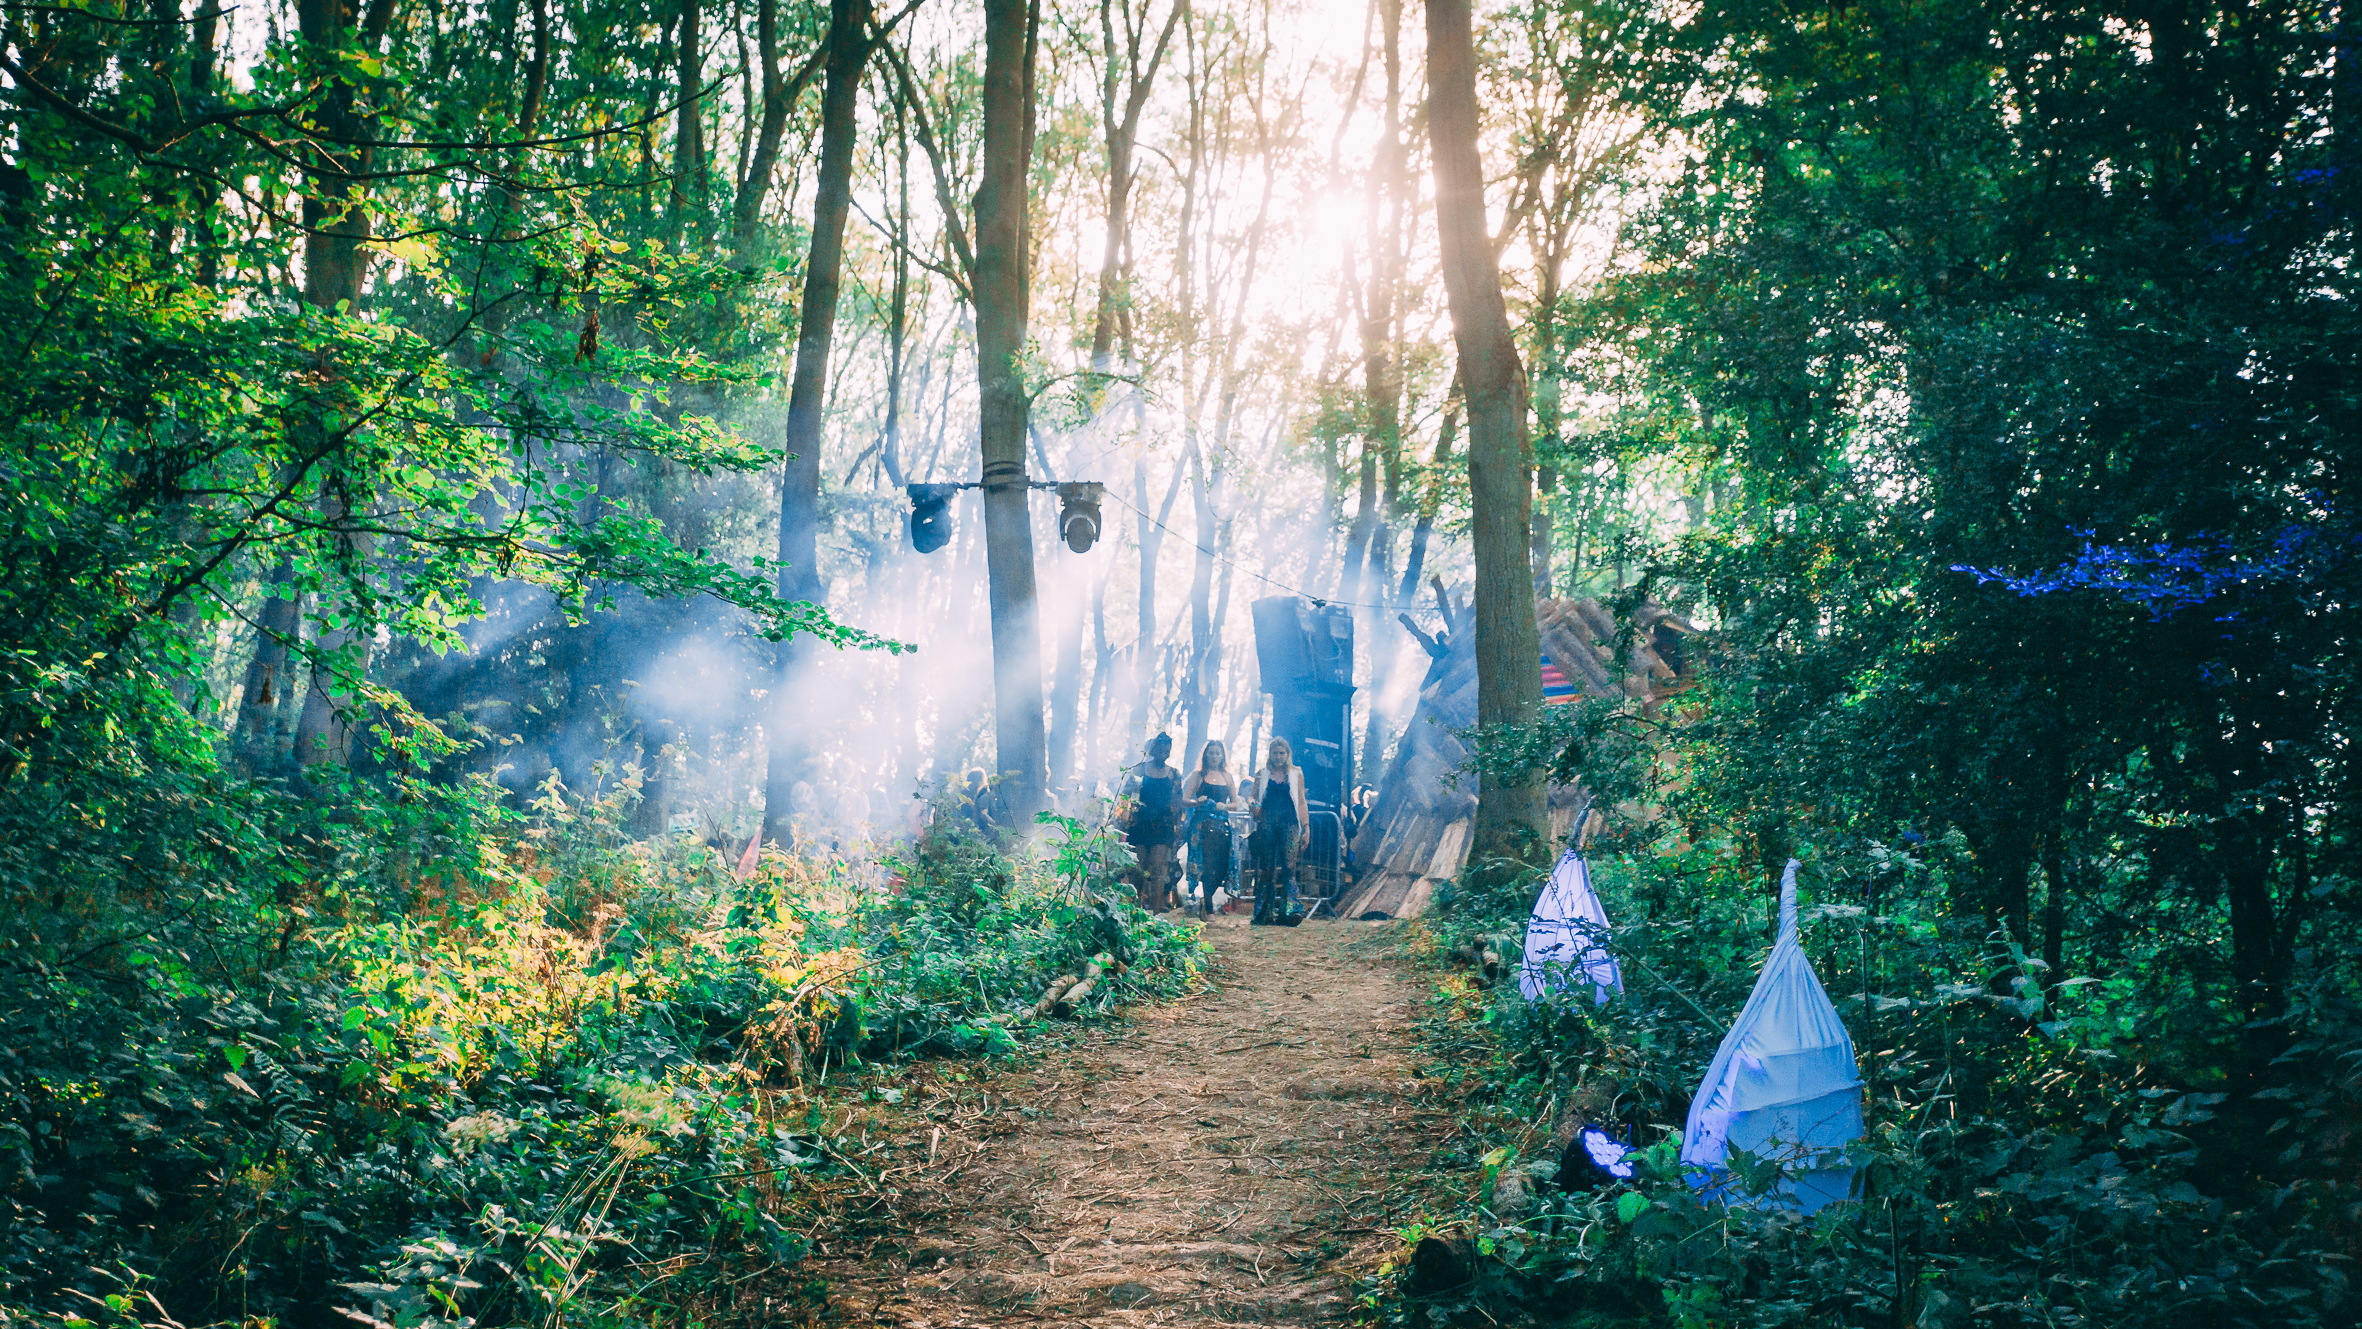 Walking in the woods on the way into a festival.